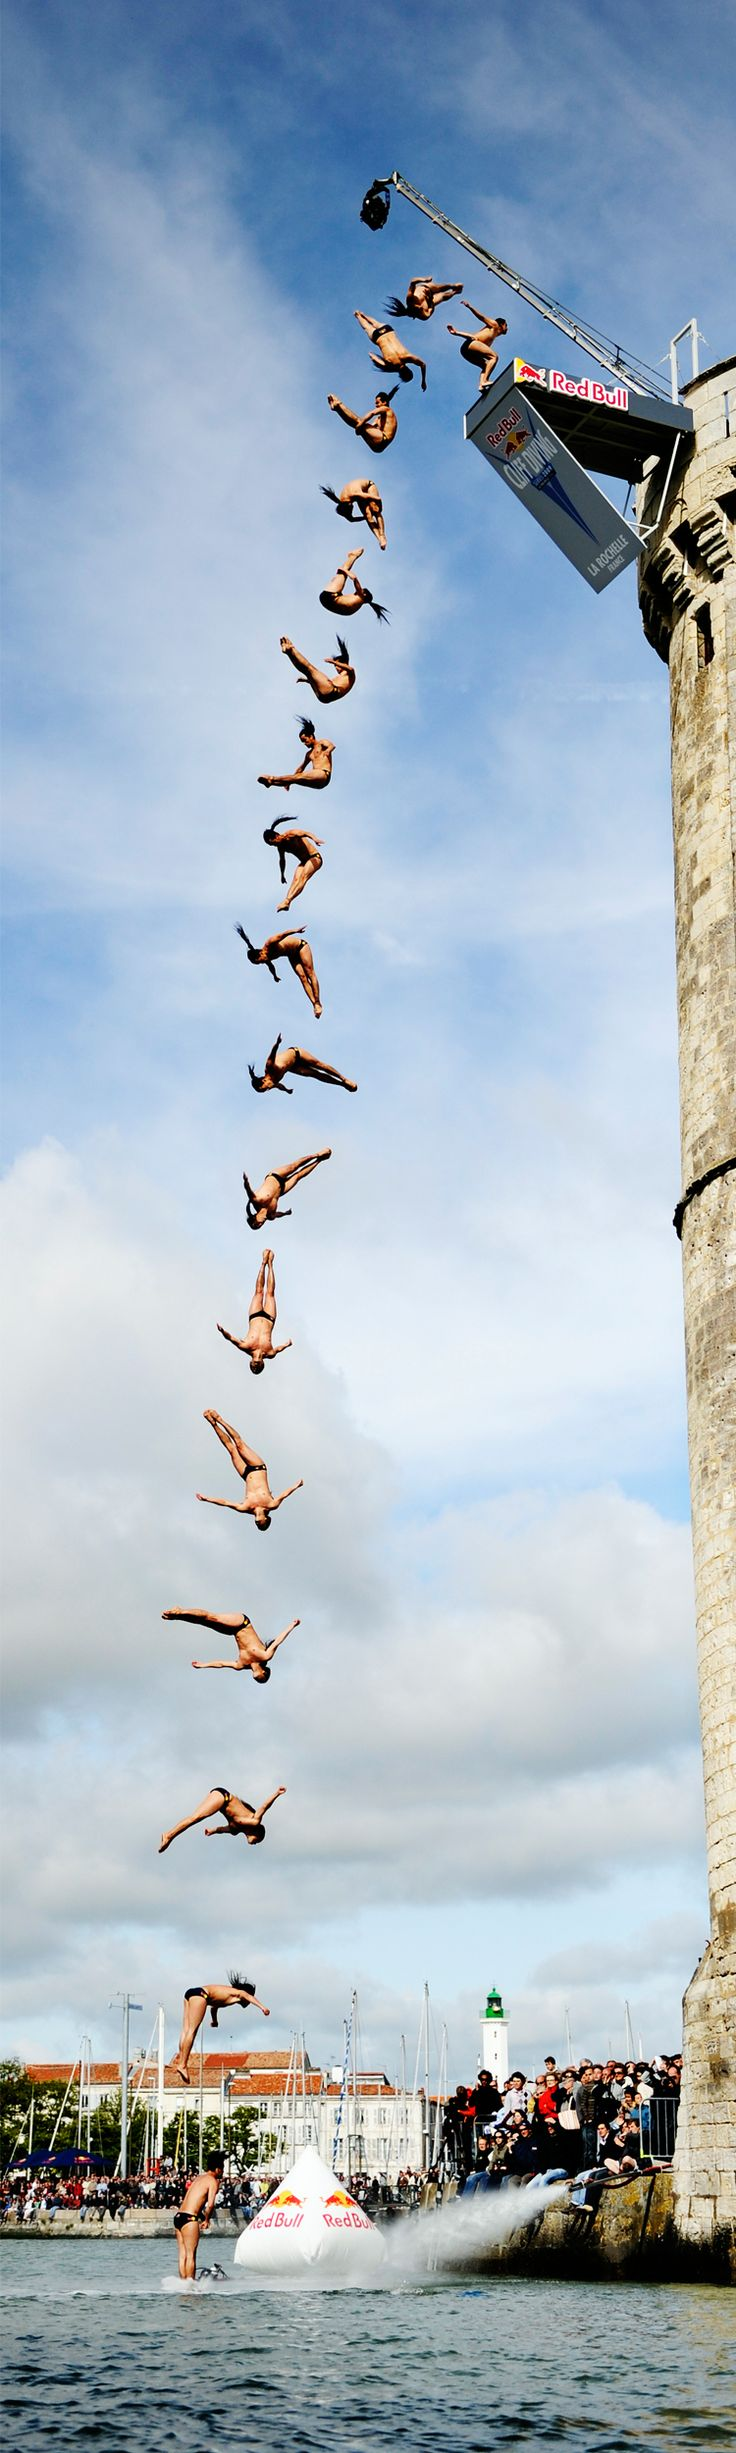 #cliffdiving #AirConcierge inspo